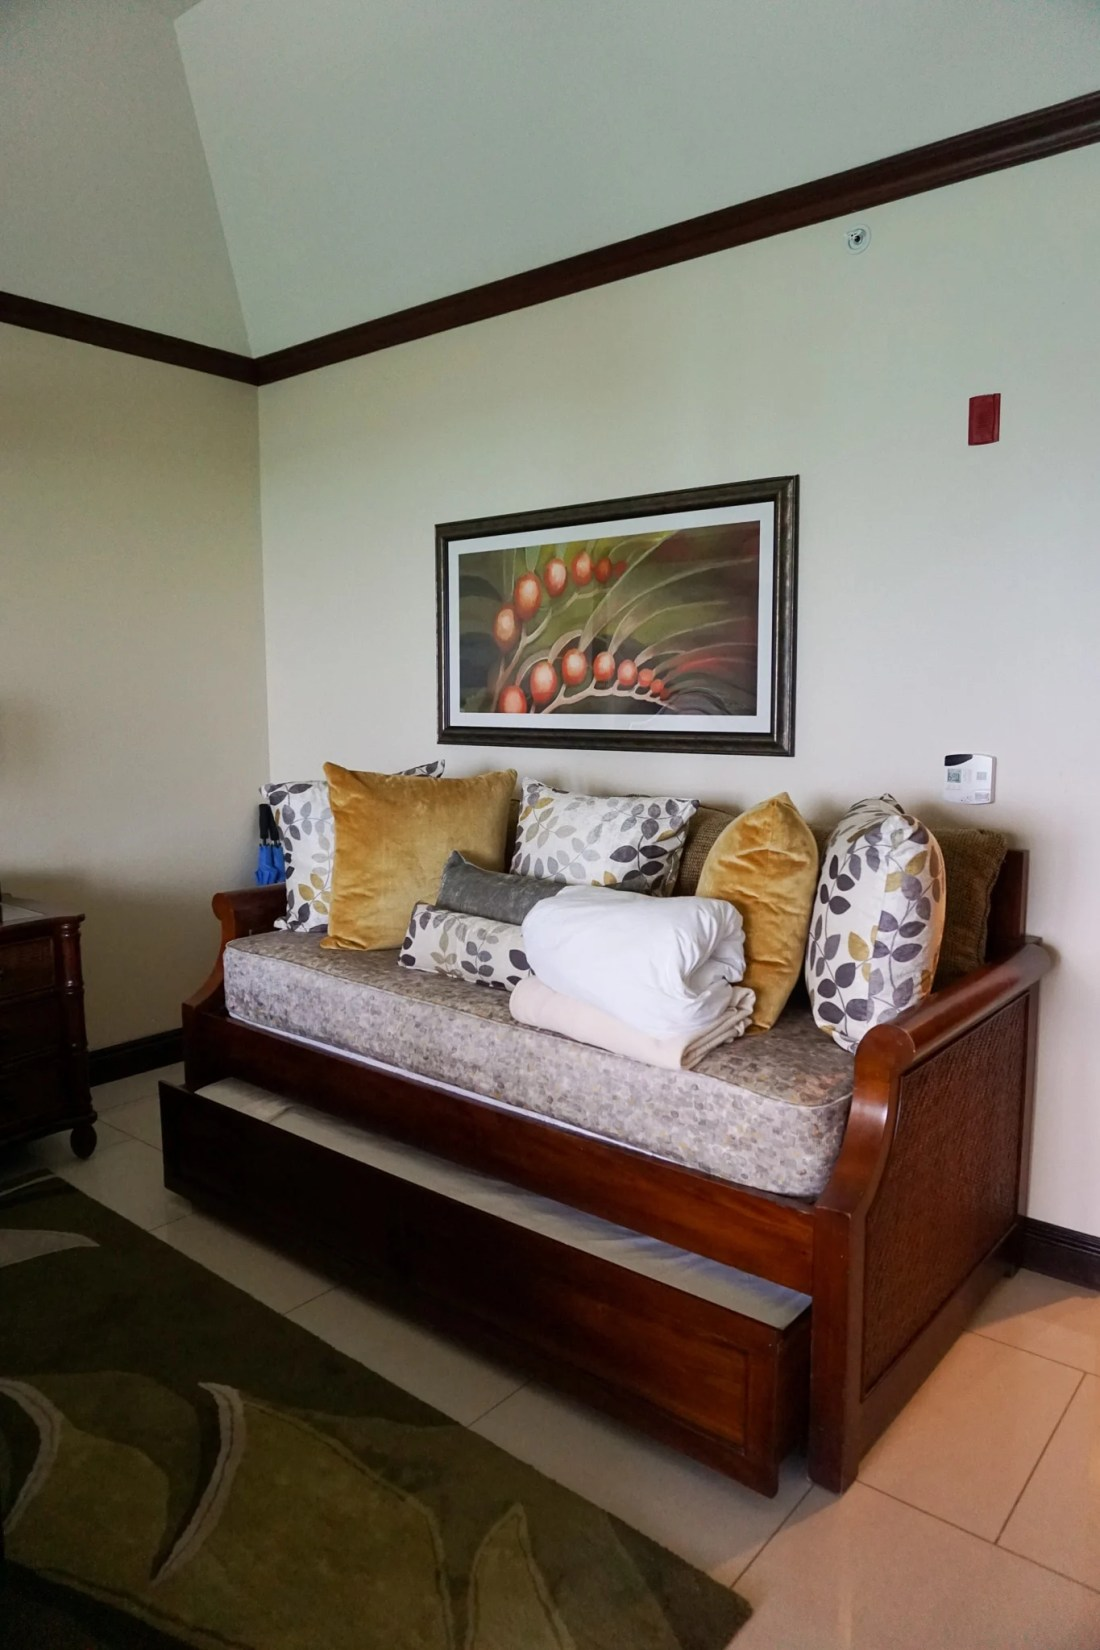 Oceanfront Family Suite Beaches Resorts in Turks and Caicos Day bed with trundle.Paradise does exist, and it's only a plane ride away. Take a look inside our suite in this Oceanfront Family Suite Room Tour at Beaches Resorts in Turks and Caicos.